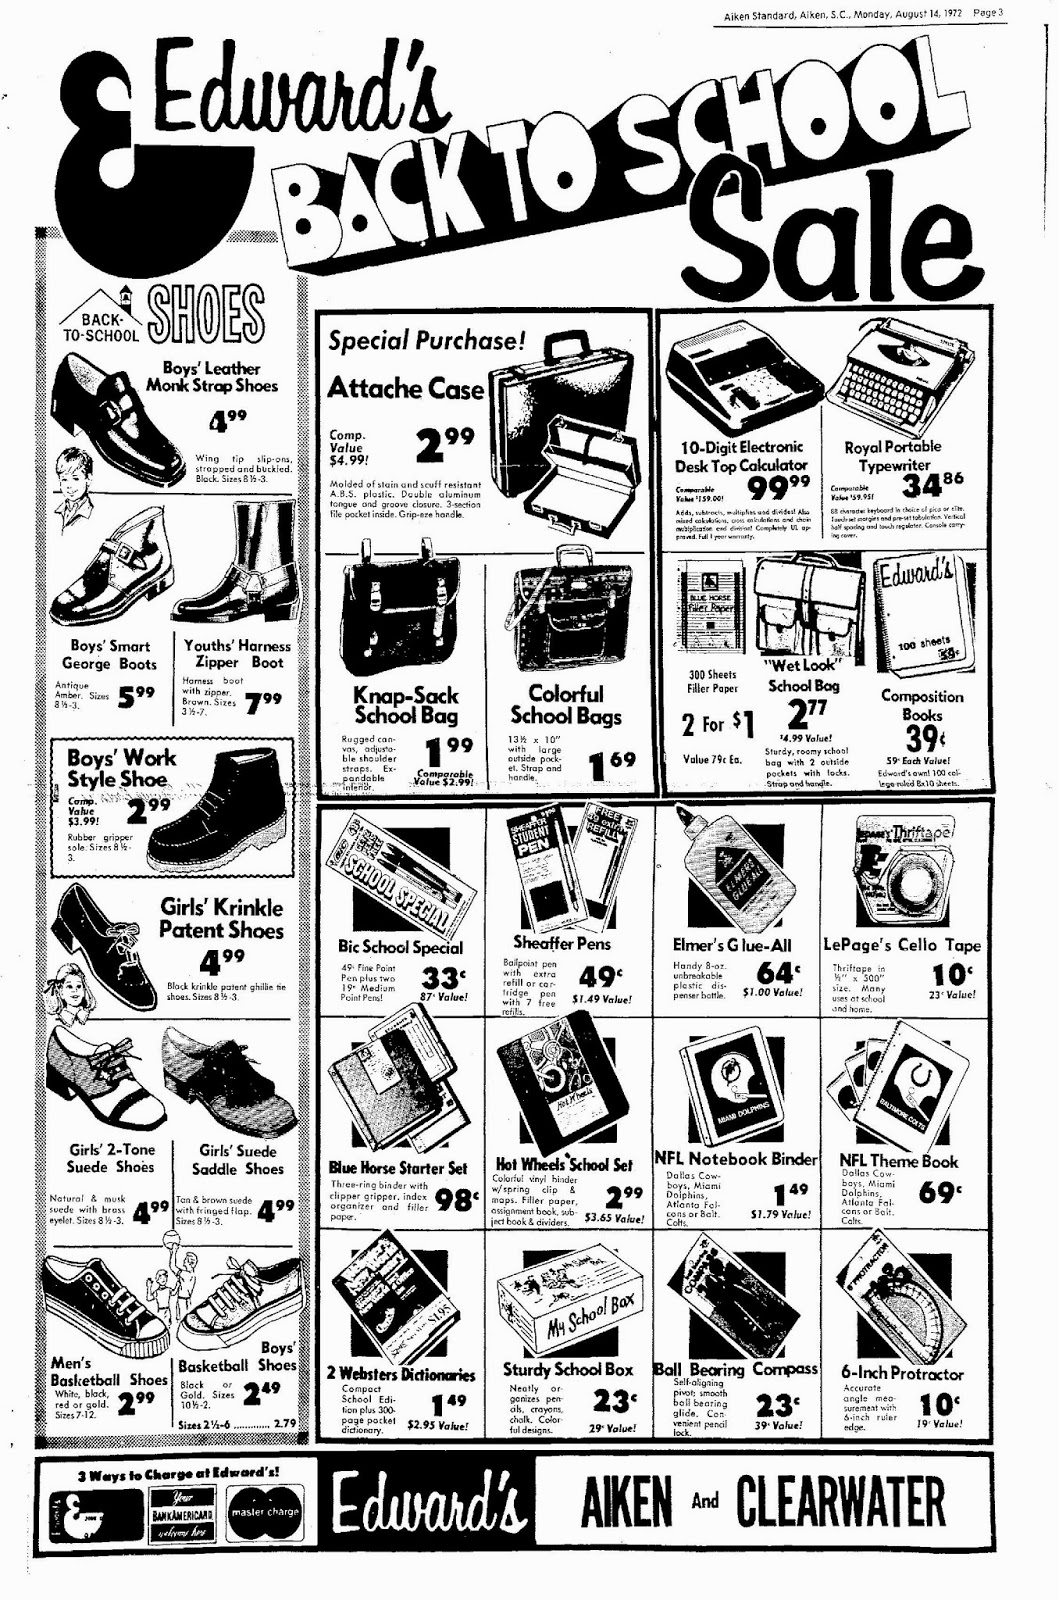 royal typewriters Sears Christmas Catalog 1987 according to the full page ad above from the aiken south carolina standard dated august 14 1972 the typewriter in the box was most likely a royal